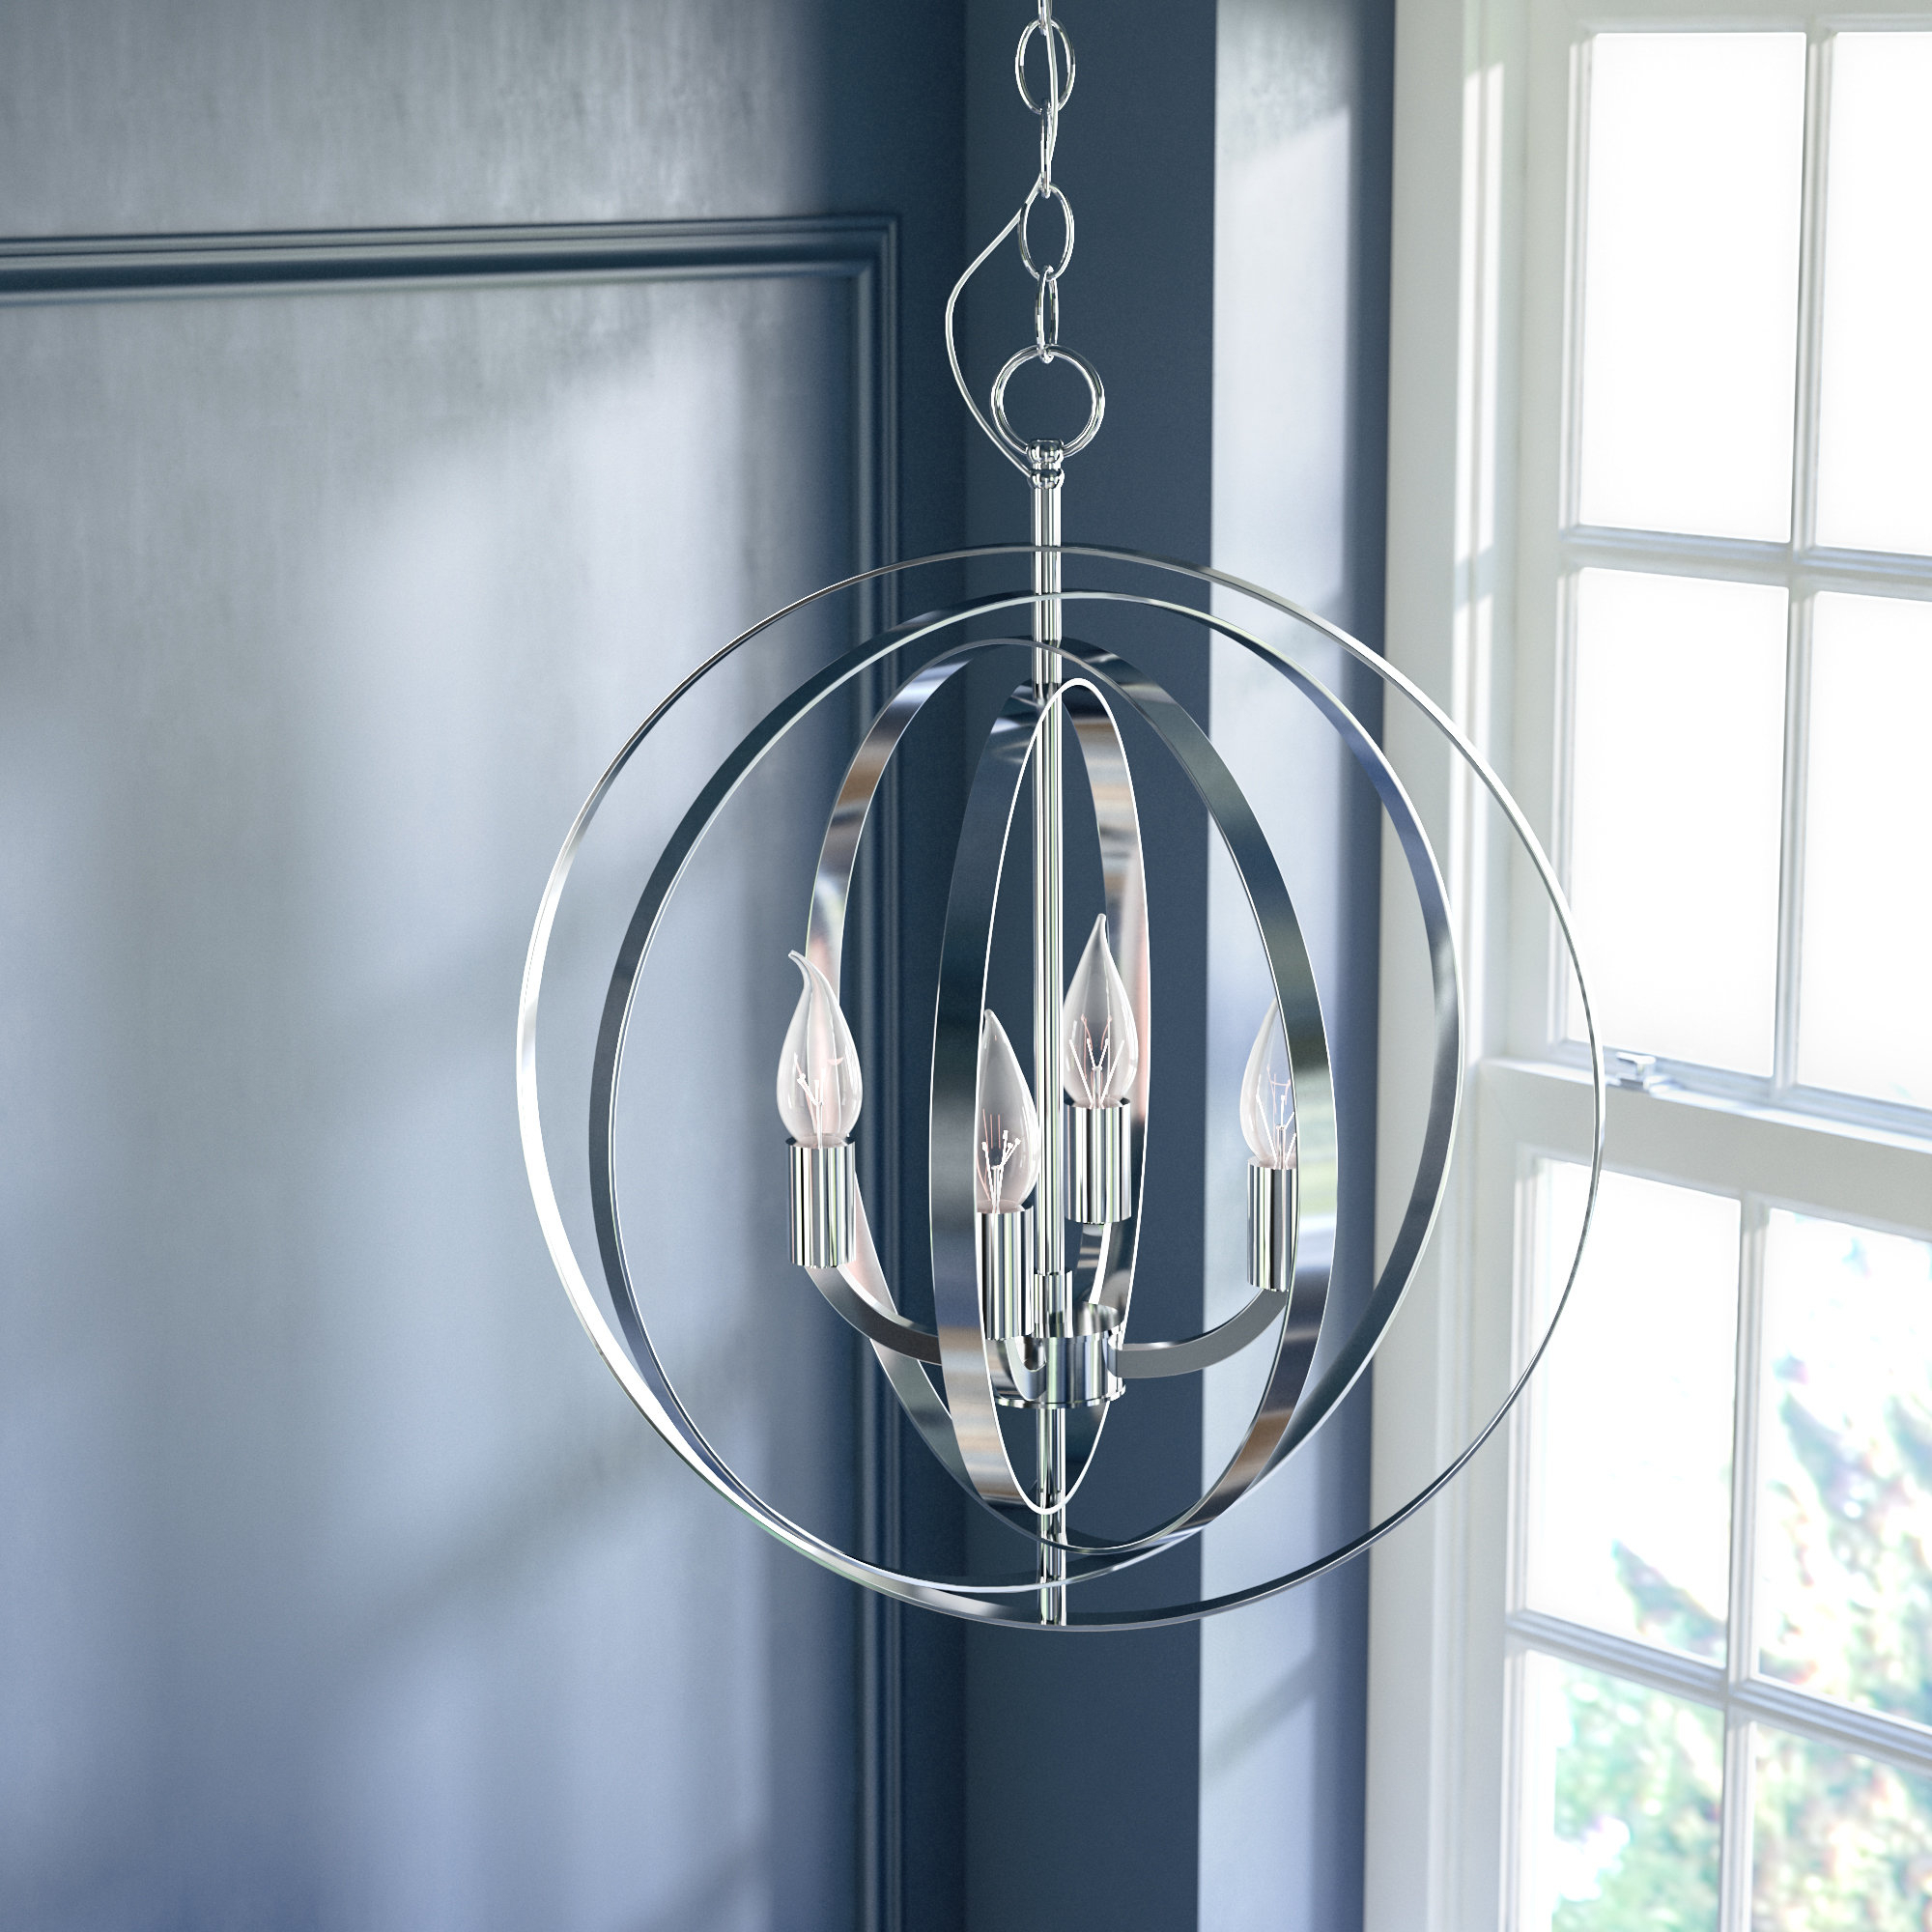 2019 Hendry 4 Light Globe Chandeliers Intended For Hendry 4 Light Globe Chandelier (Gallery 1 of 20)